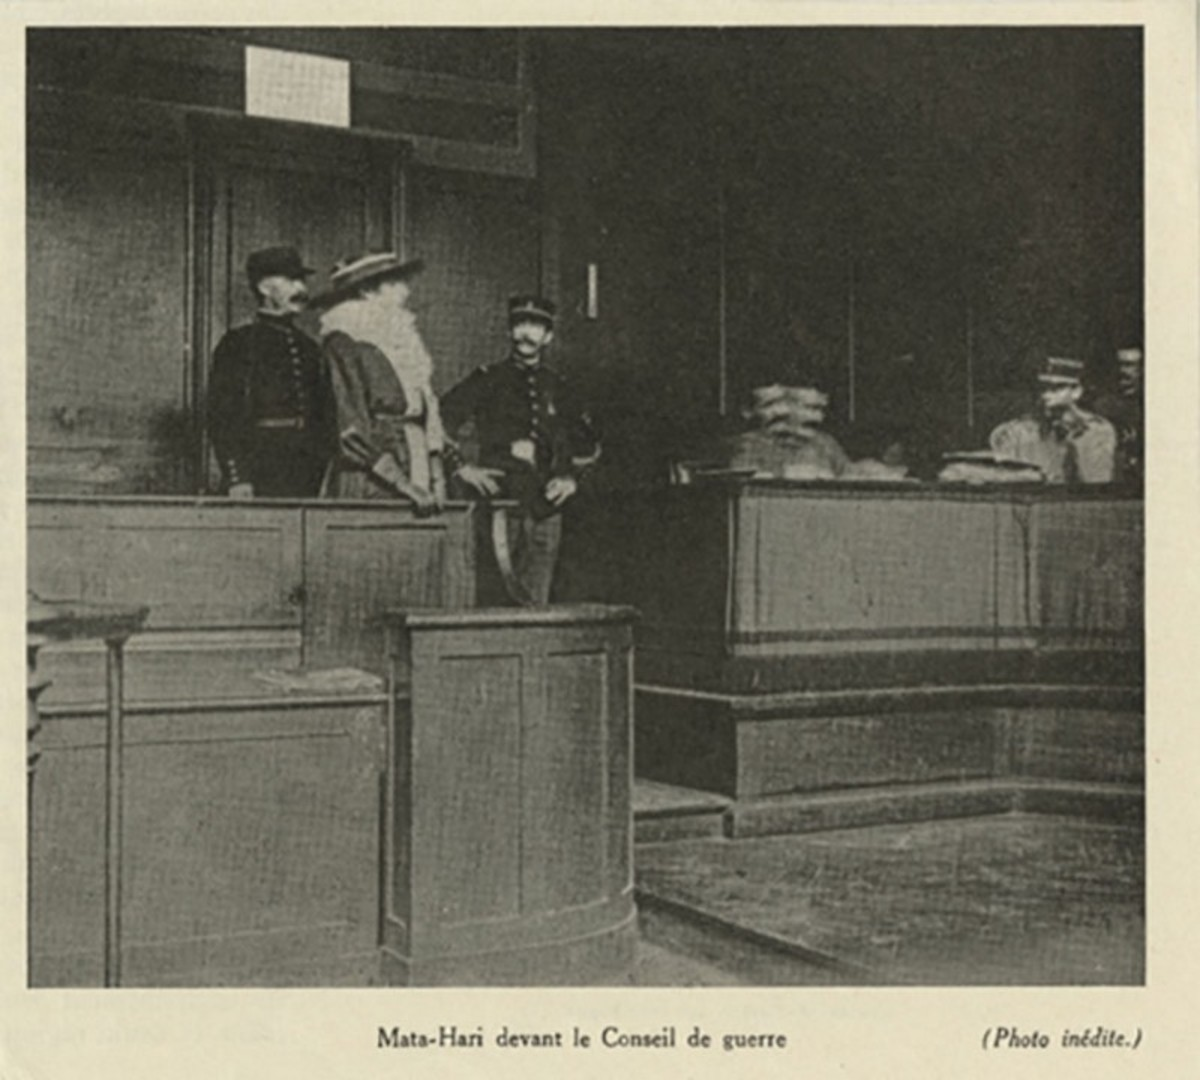 Mata Hari on trial for her life